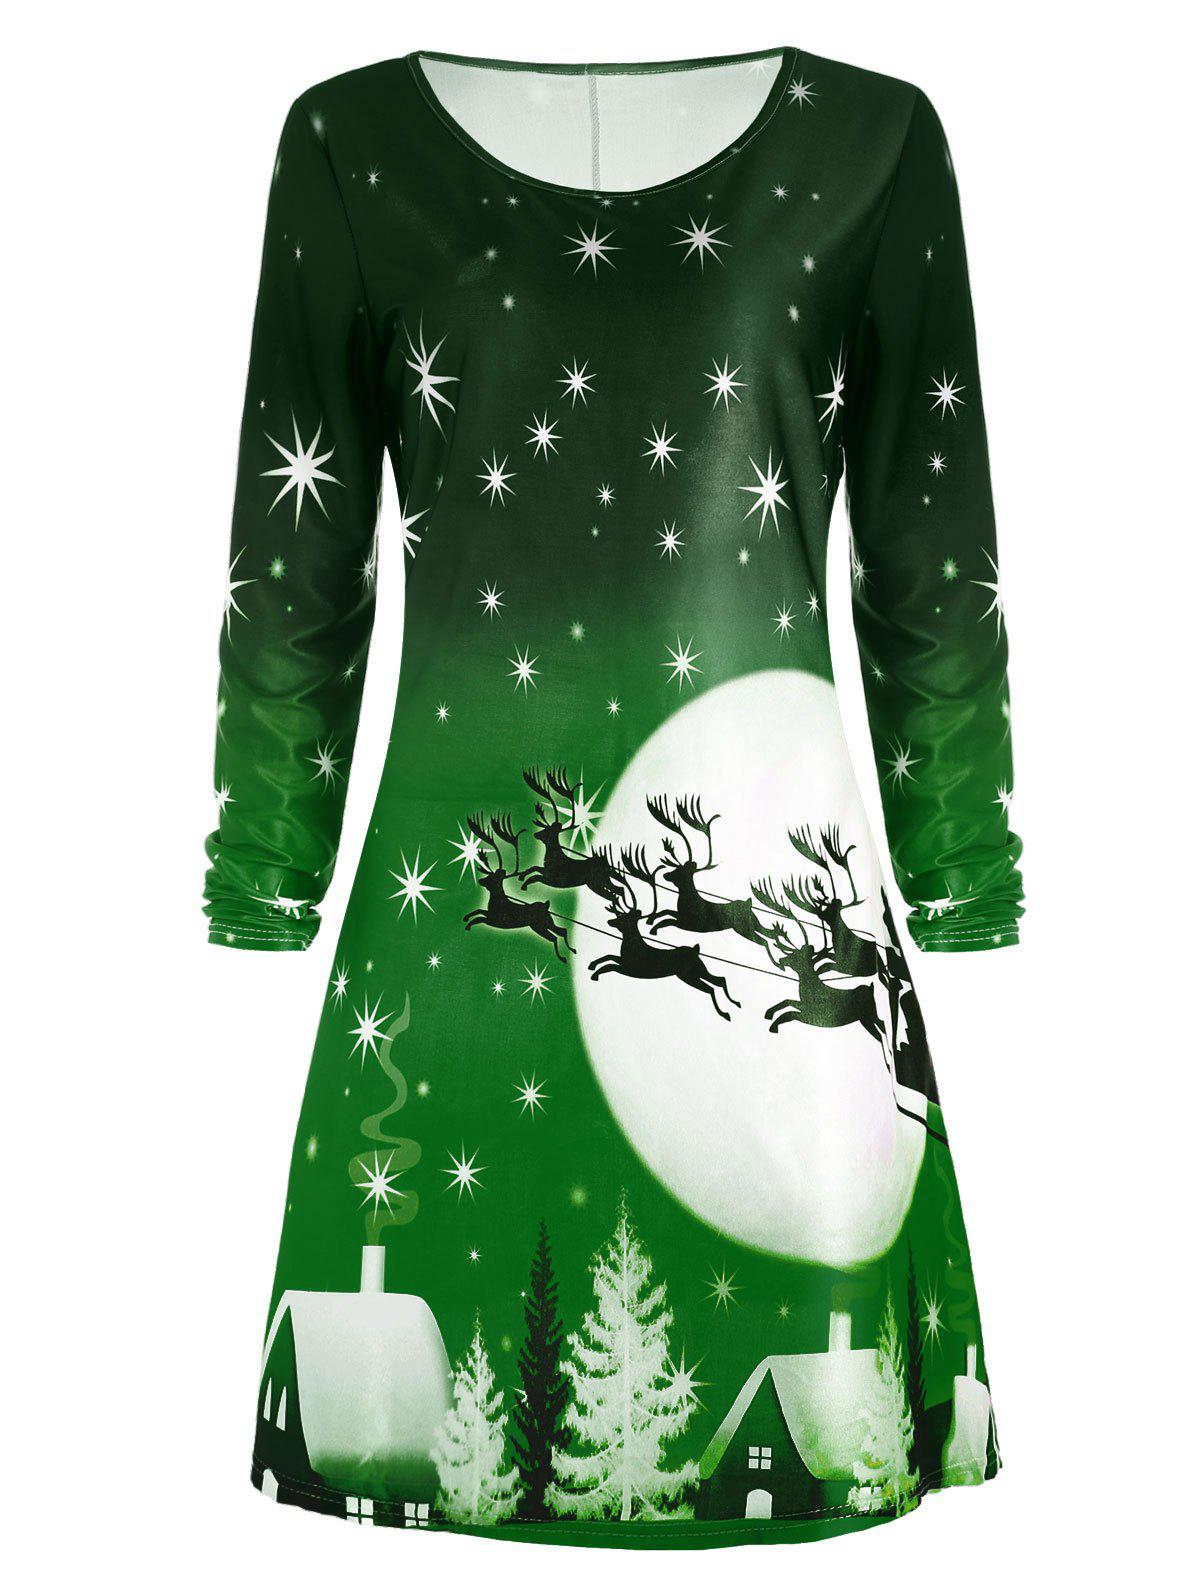 Christmas Deer Long Sleeve Tee Skater DressWOMEN<br><br>Size: XL; Color: GREEN; Style: Casual; Material: Polyester; Silhouette: A-Line; Dresses Length: Knee-Length; Neckline: Round Collar; Sleeve Length: Long Sleeves; Pattern Type: Animal,Character,Print,Star; With Belt: No; Season: Fall; Weight: 0.2300kg; Package Contents: 1 x Dress; Occasion: Casual;